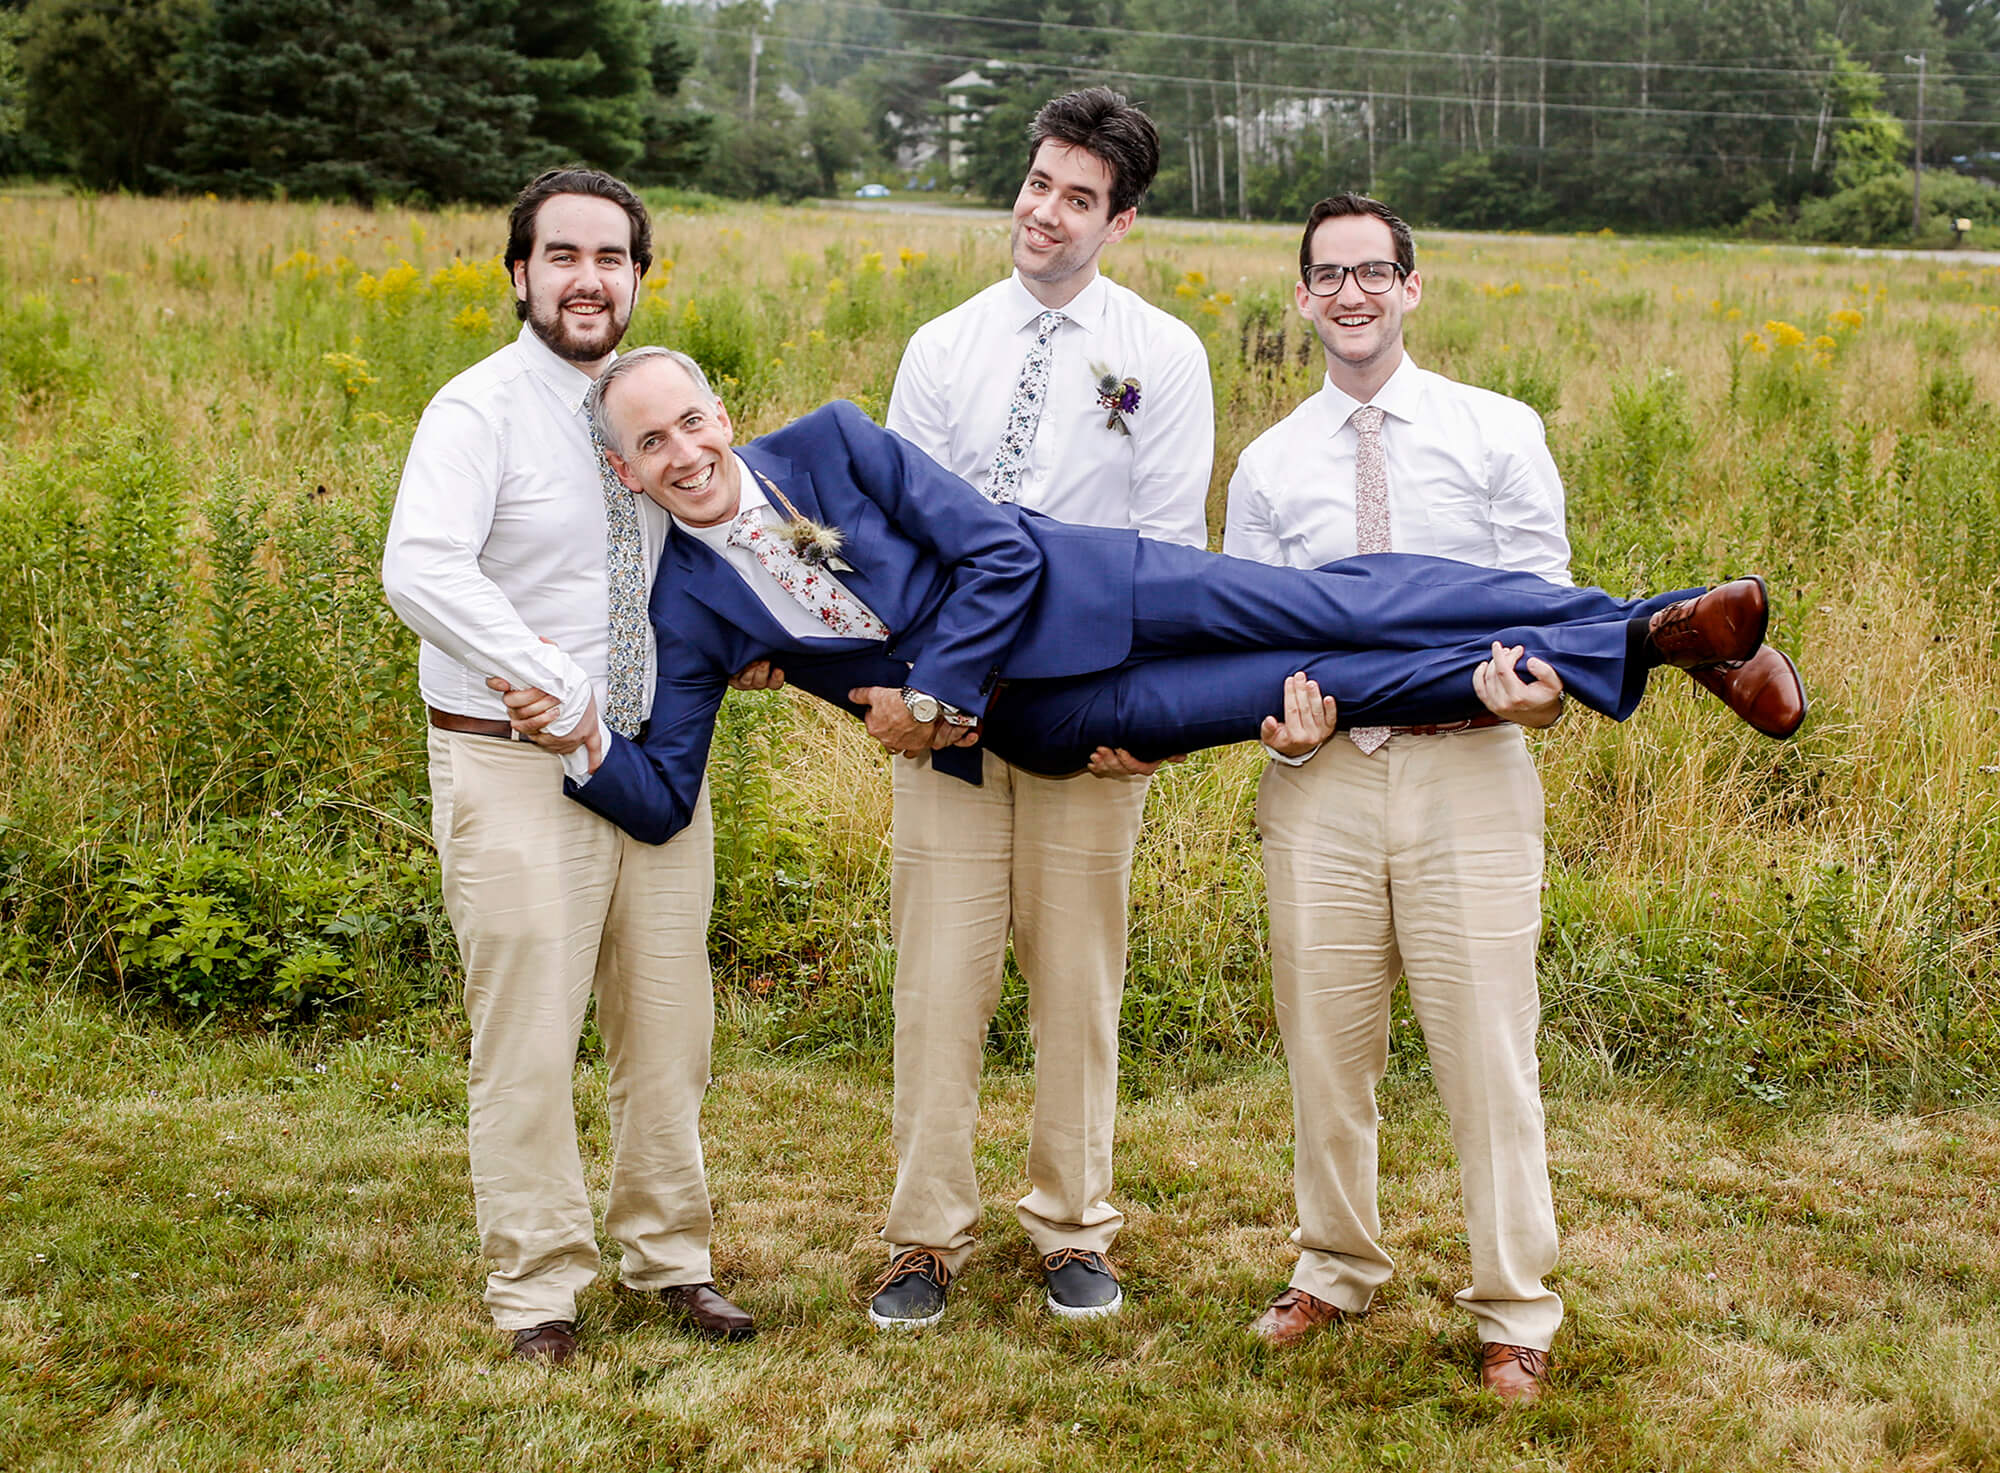 Wedding photography of three sons holding their father for a photo